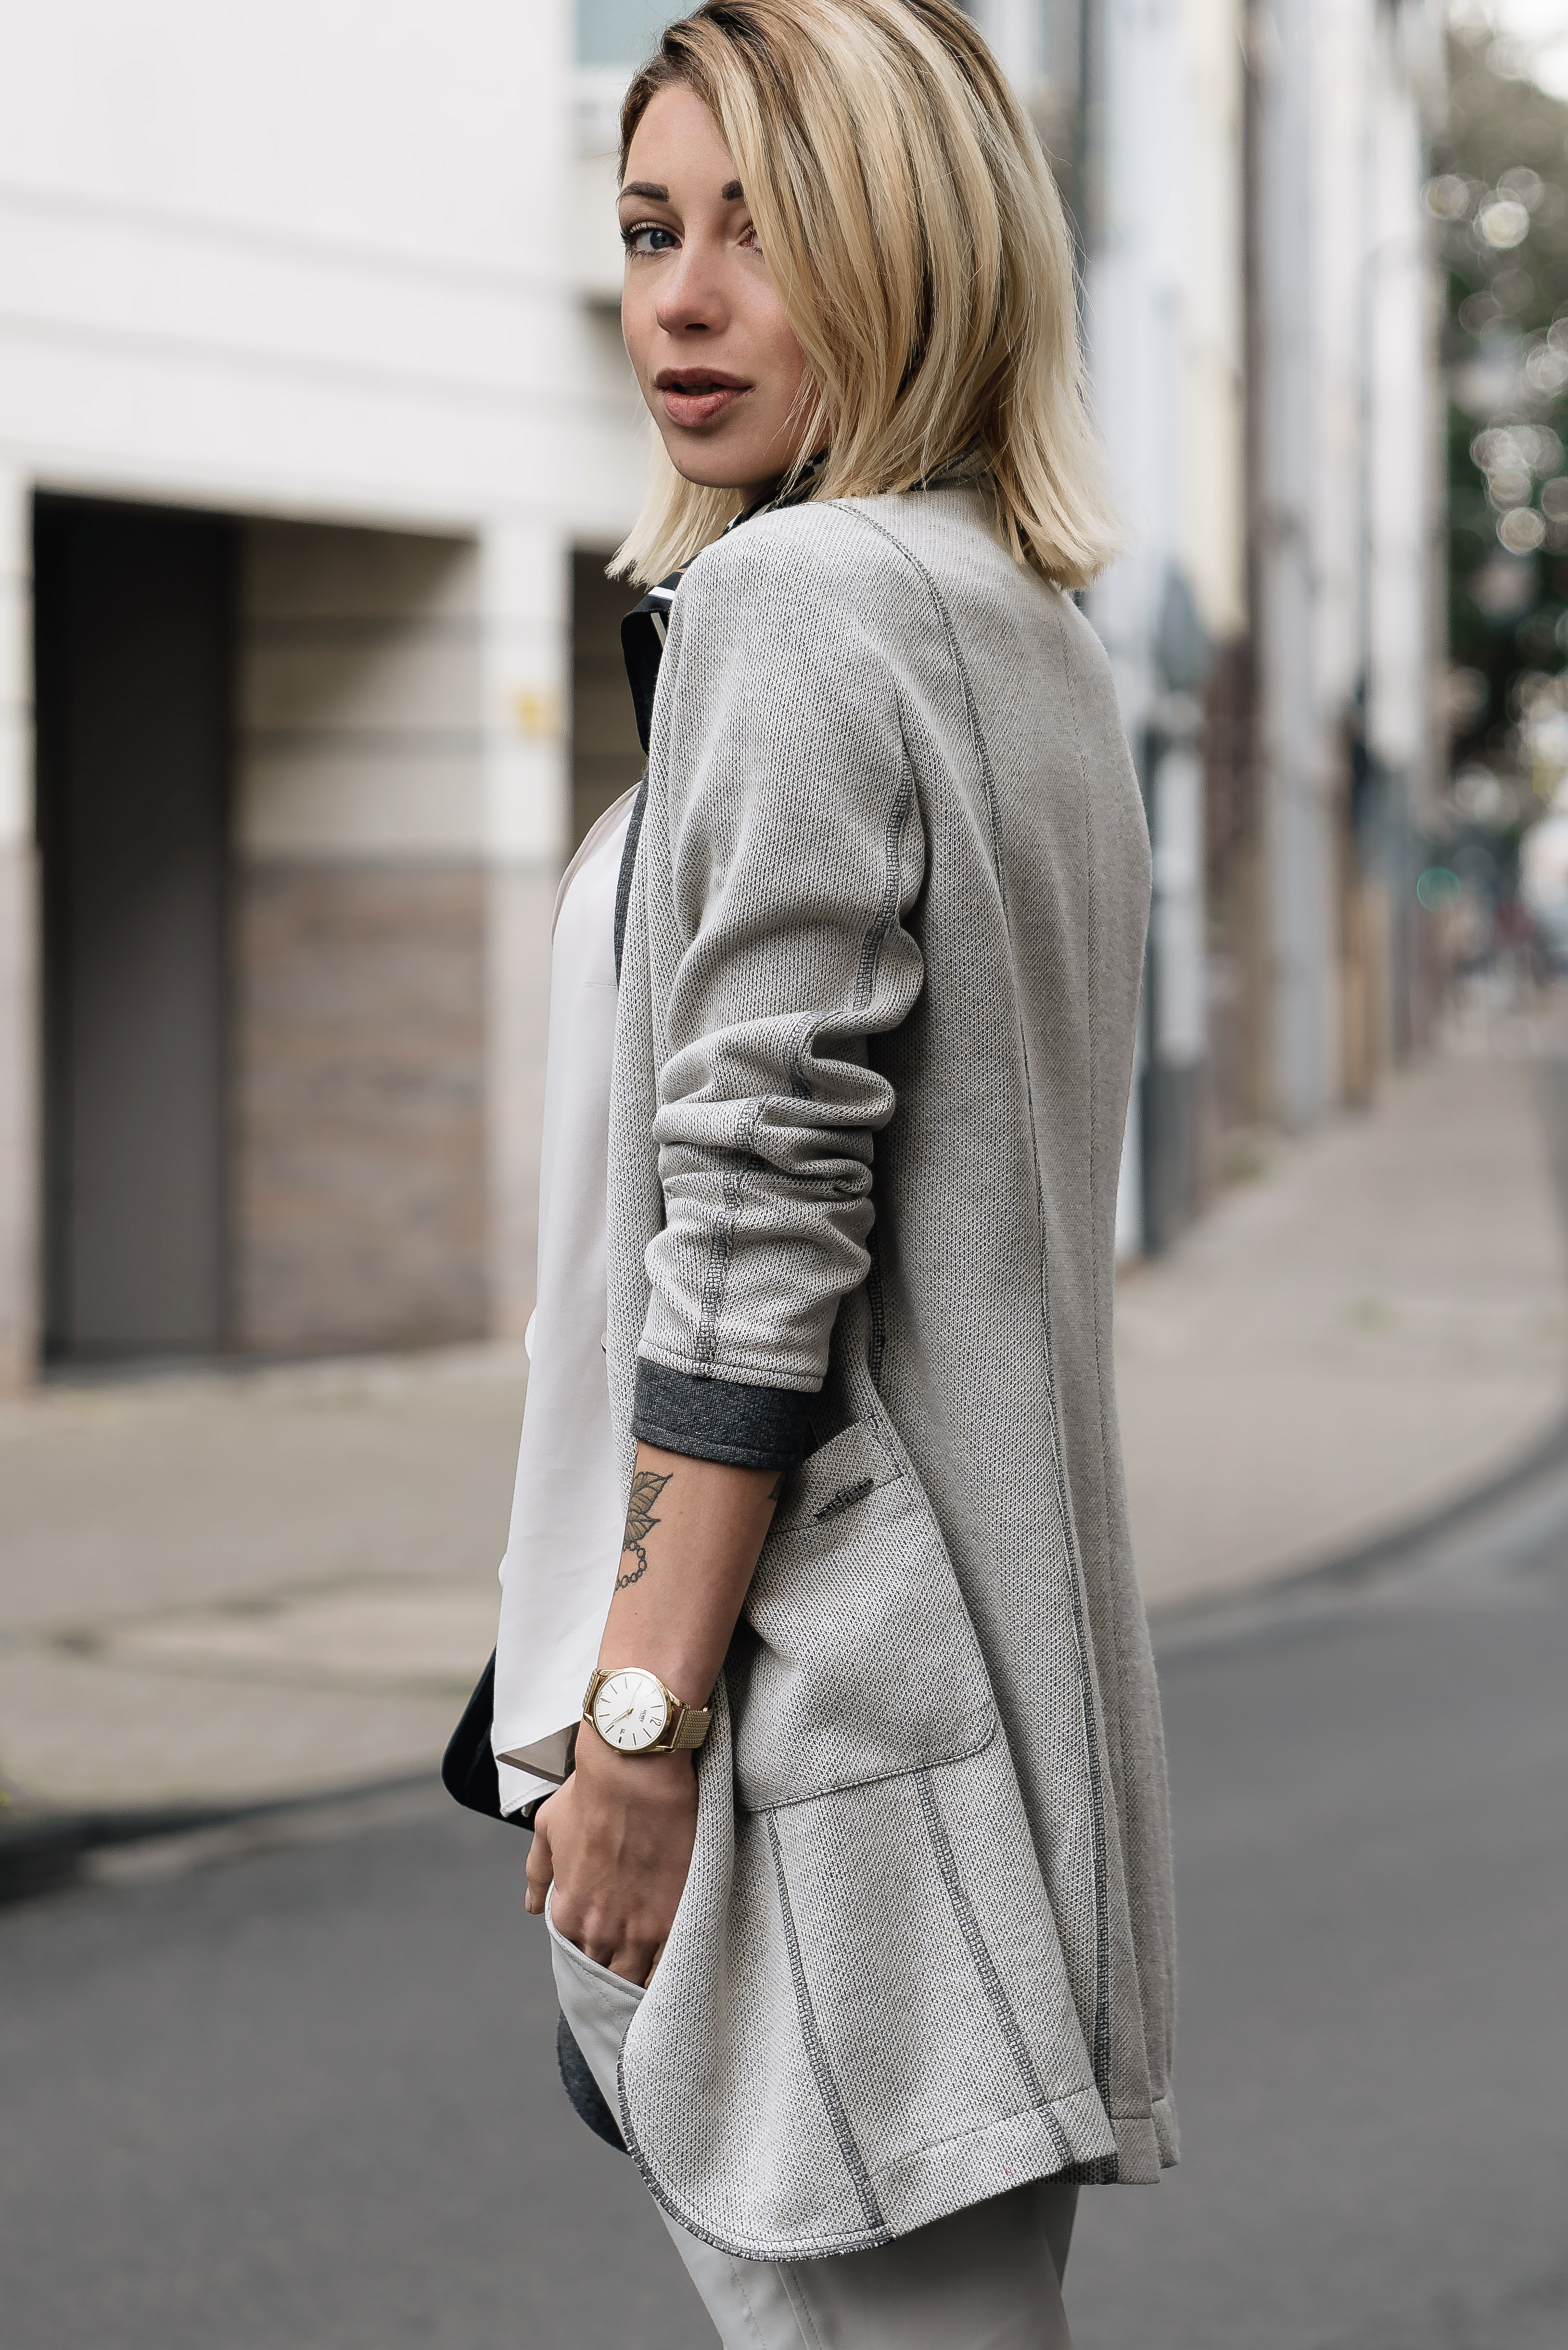 streetstyle-blog-fashion-outfit-couturedecoeur